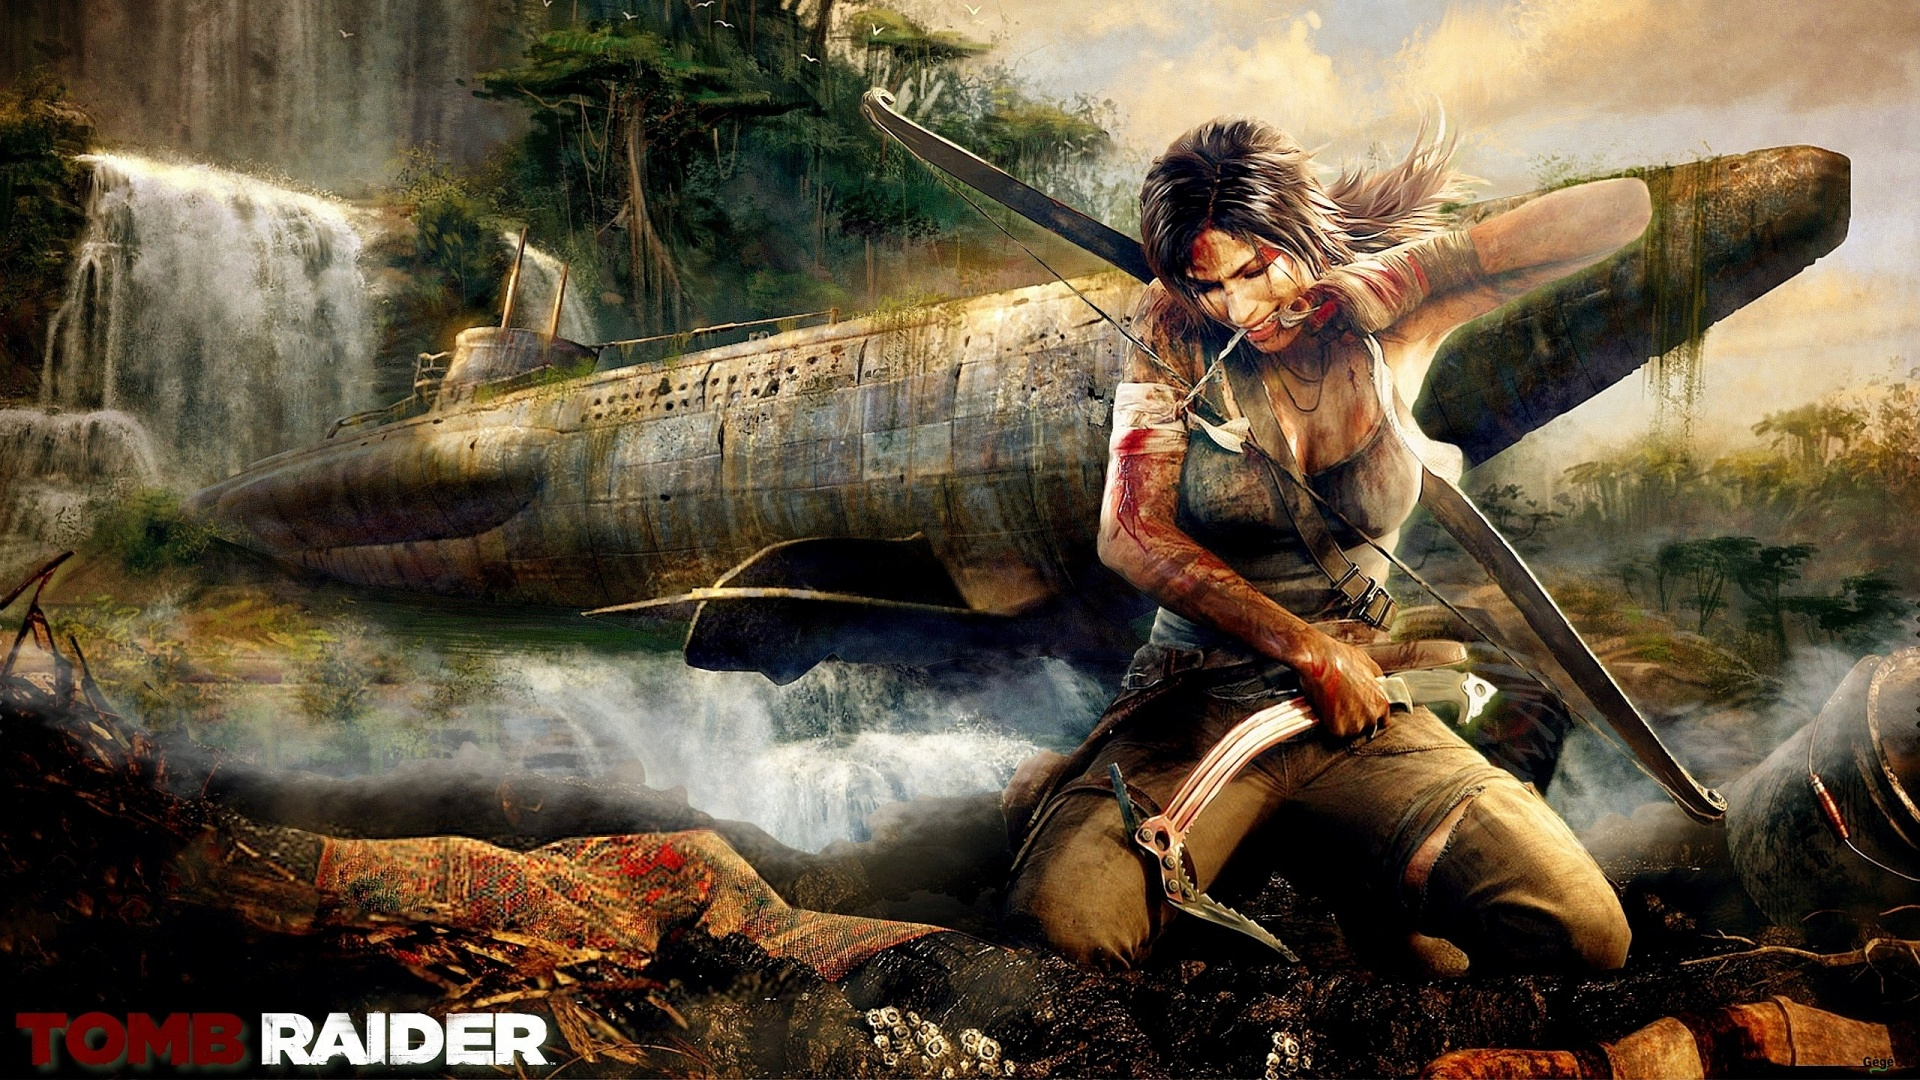 tomb raider 2013 wallpaper 1920x1080